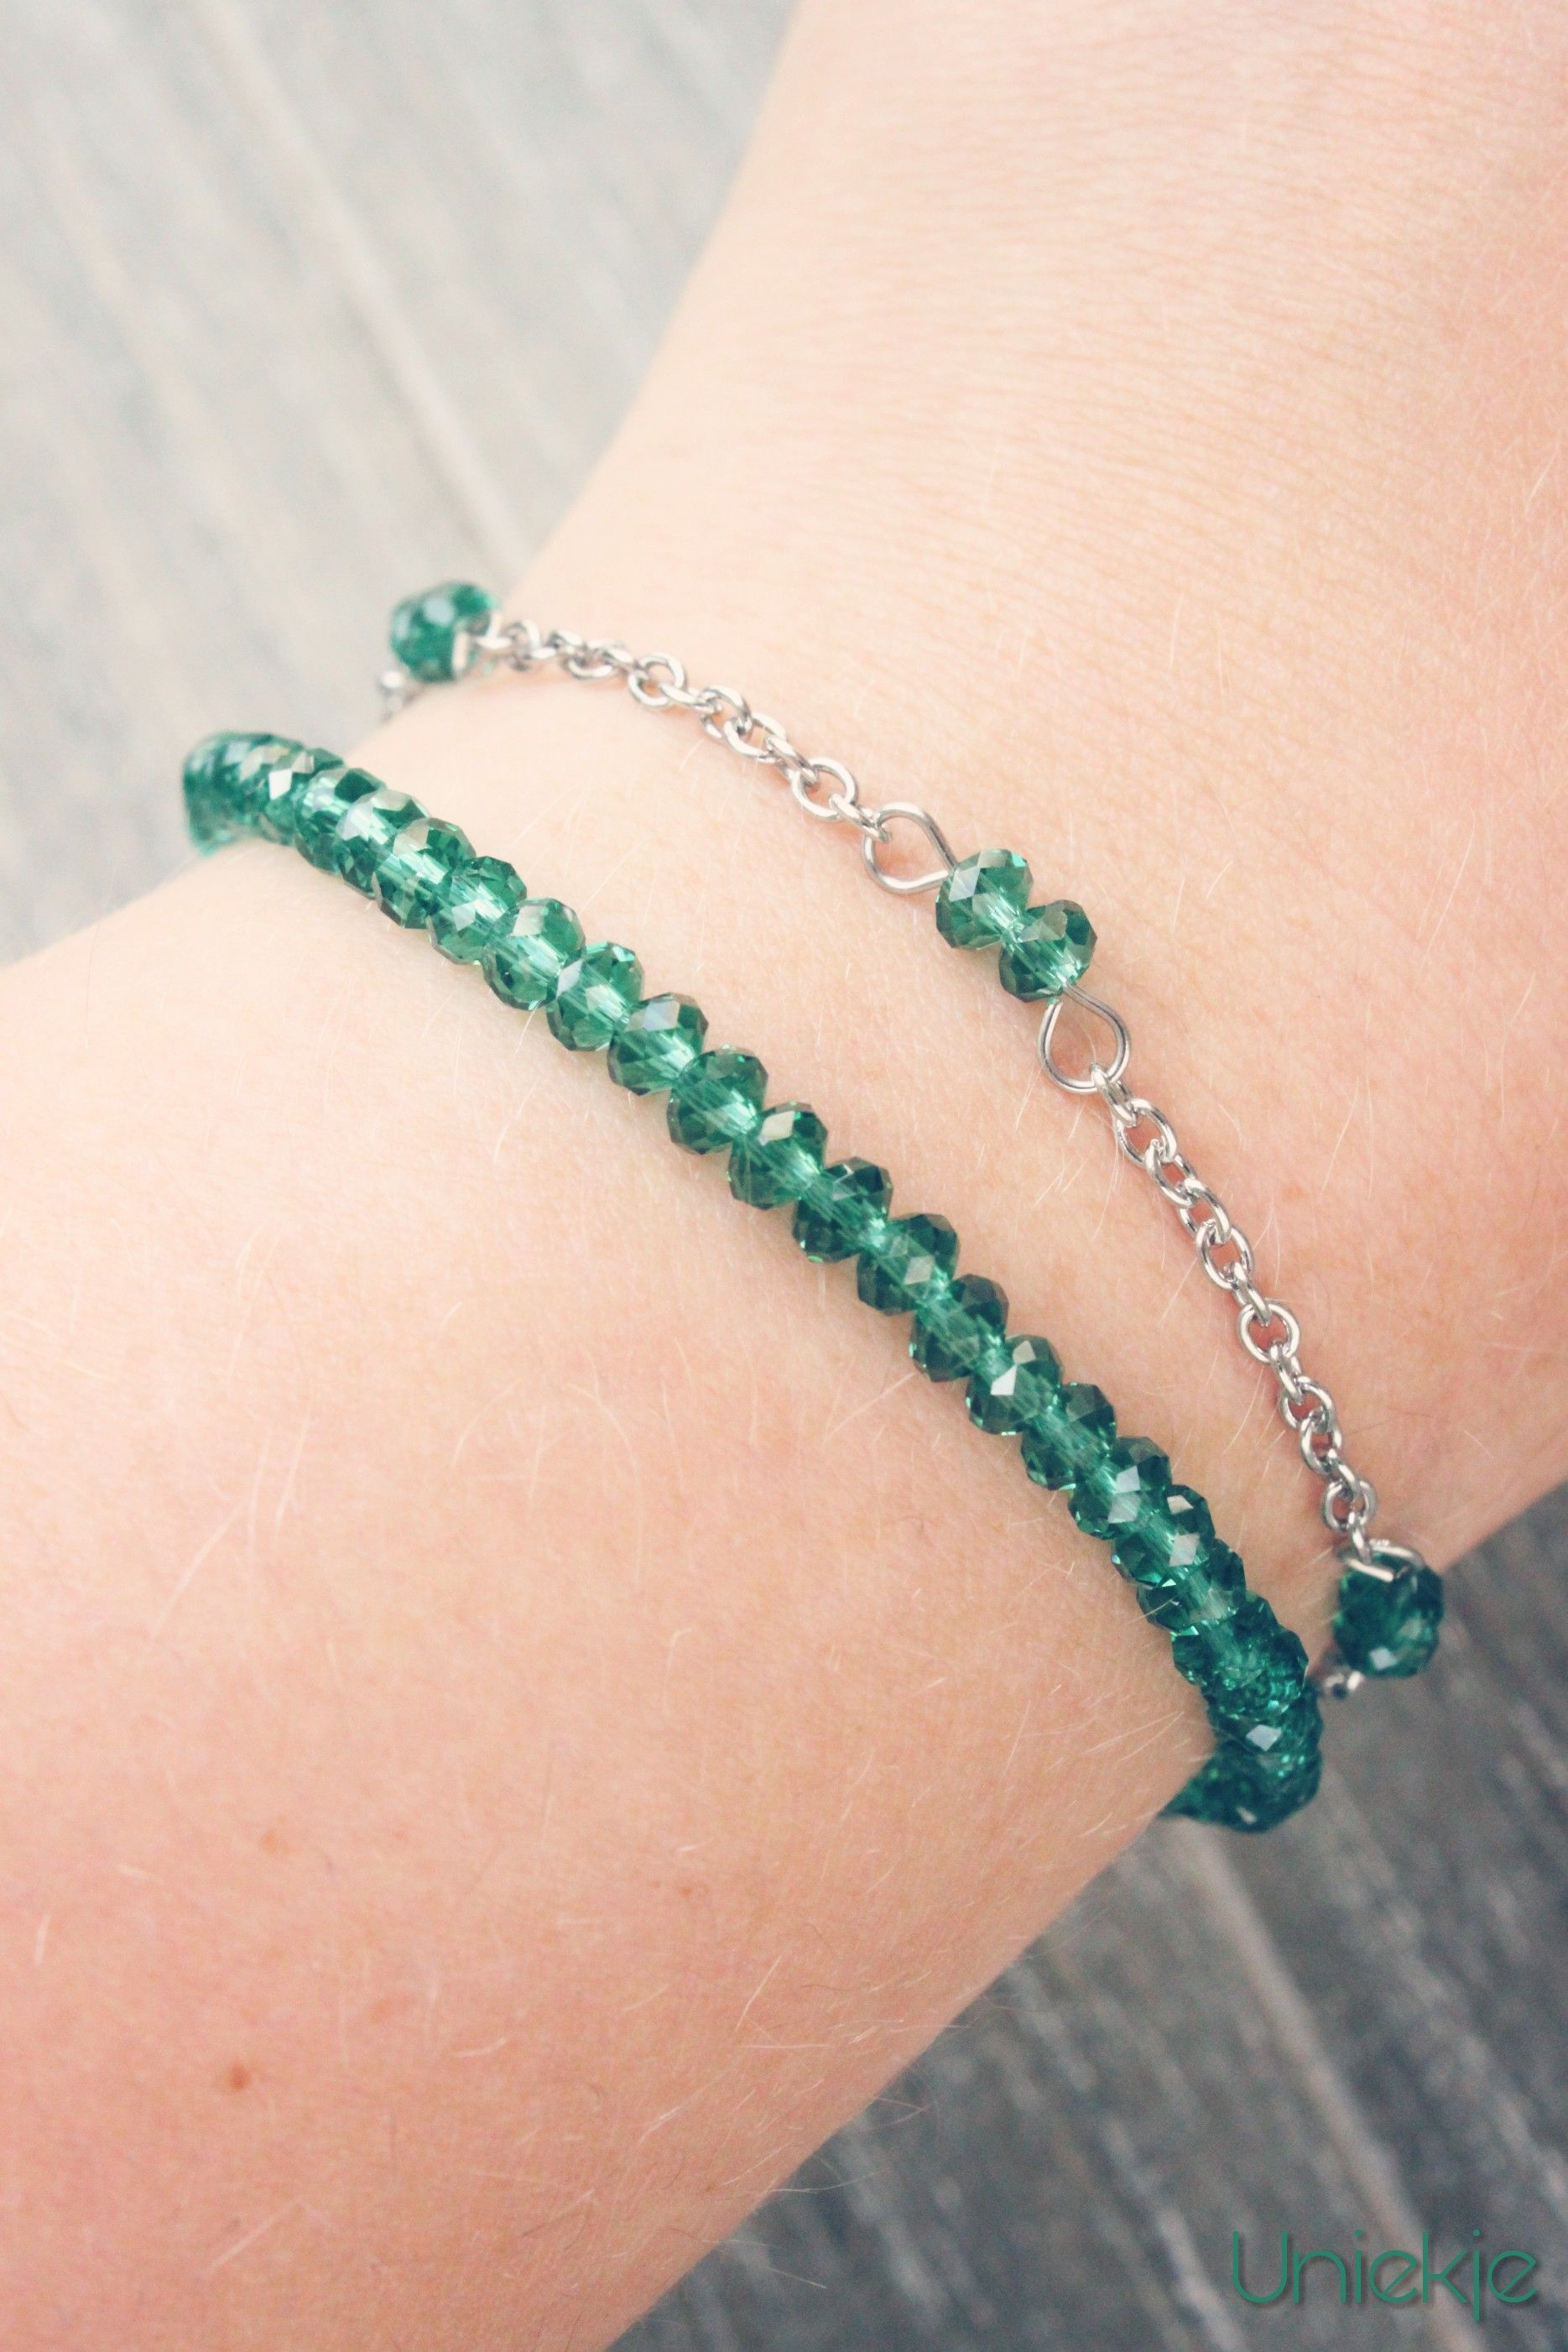 Handmade delicate RVS bracelets with emerald / indicolite color faceted crystal beads